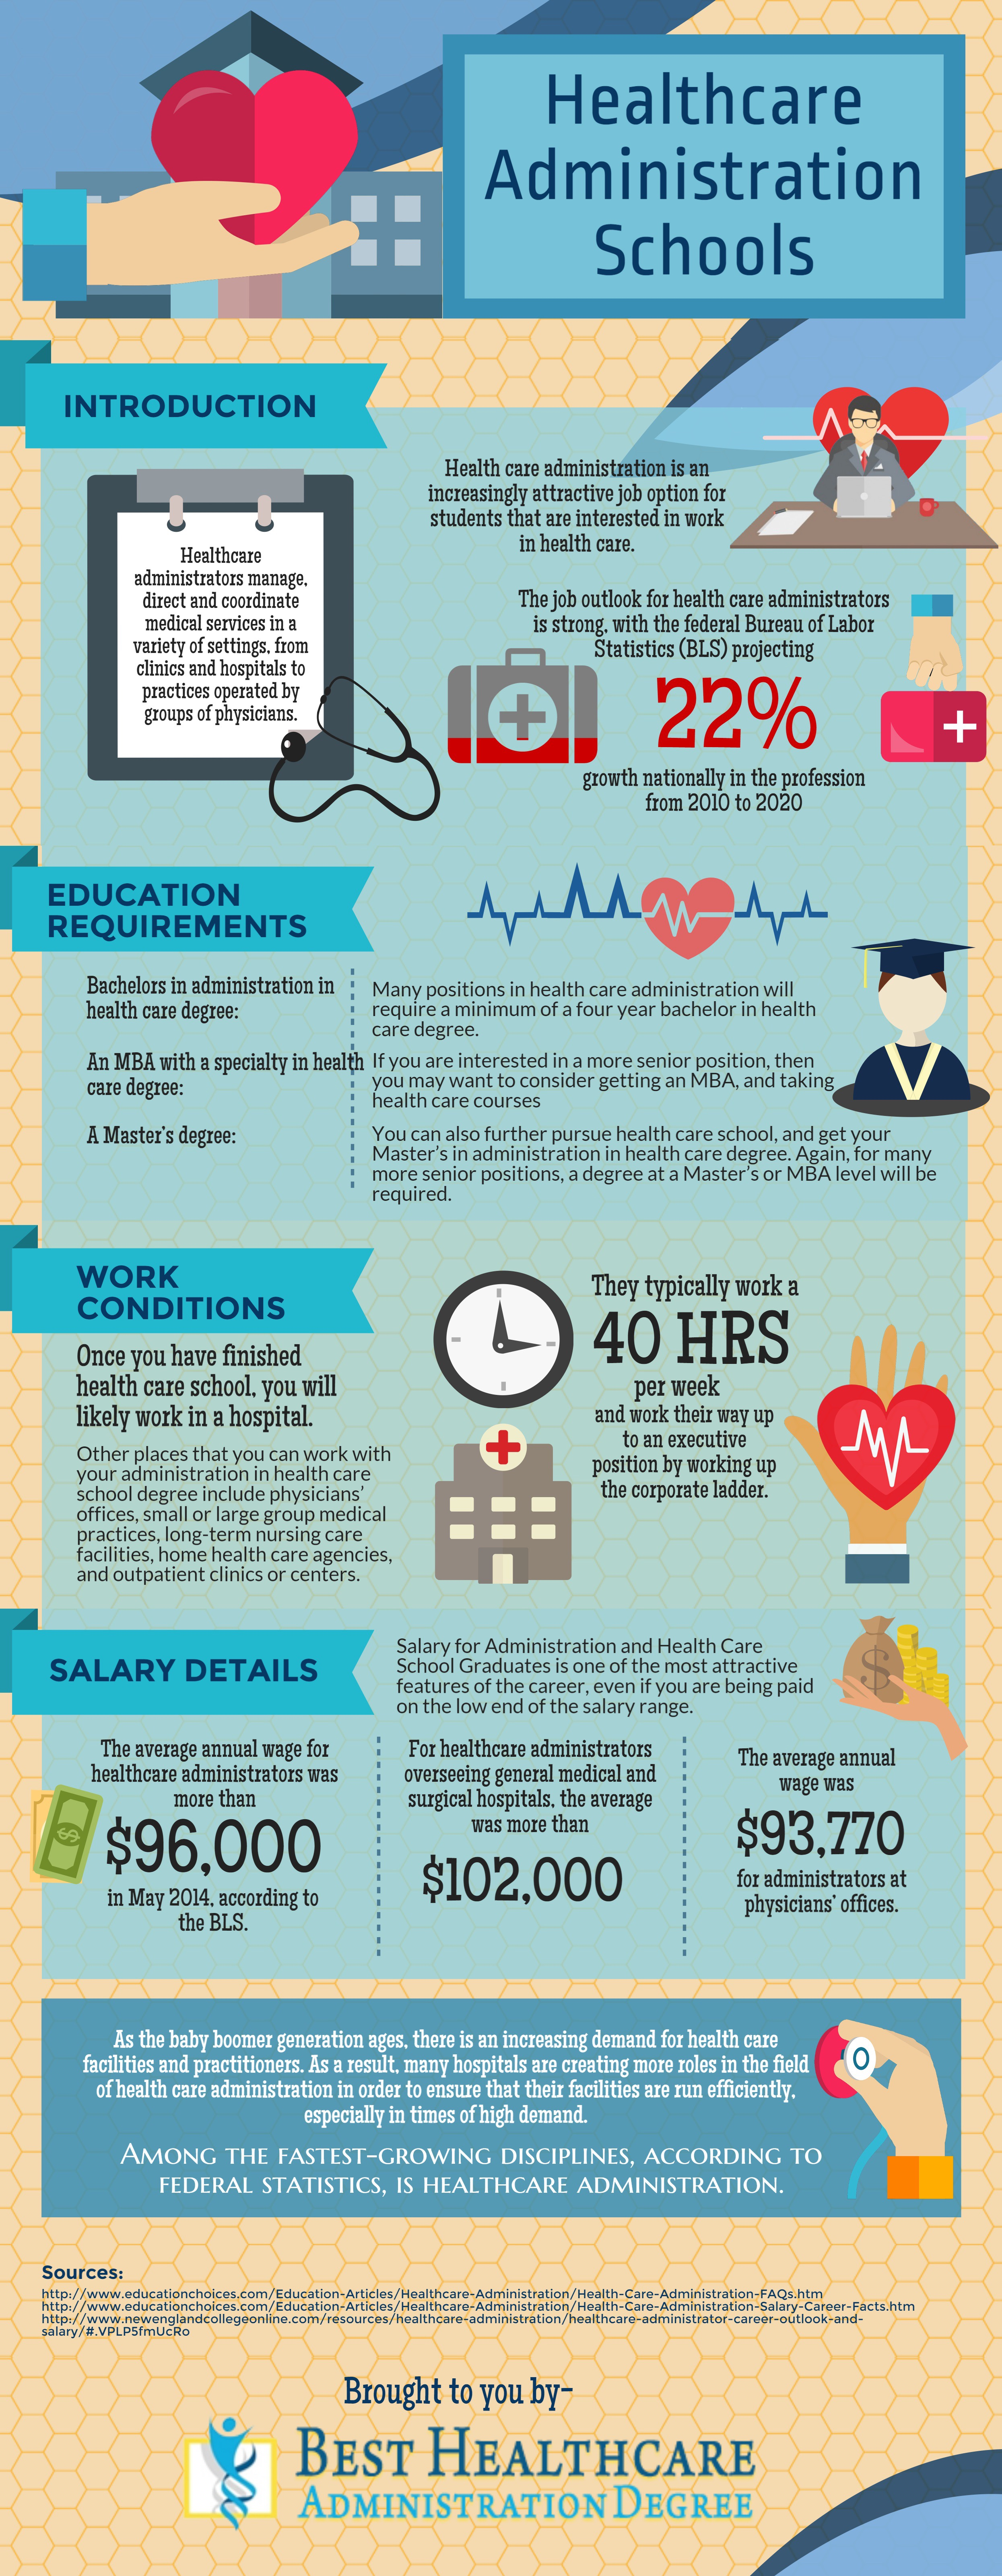 Healthcare Administration Degree Infographic